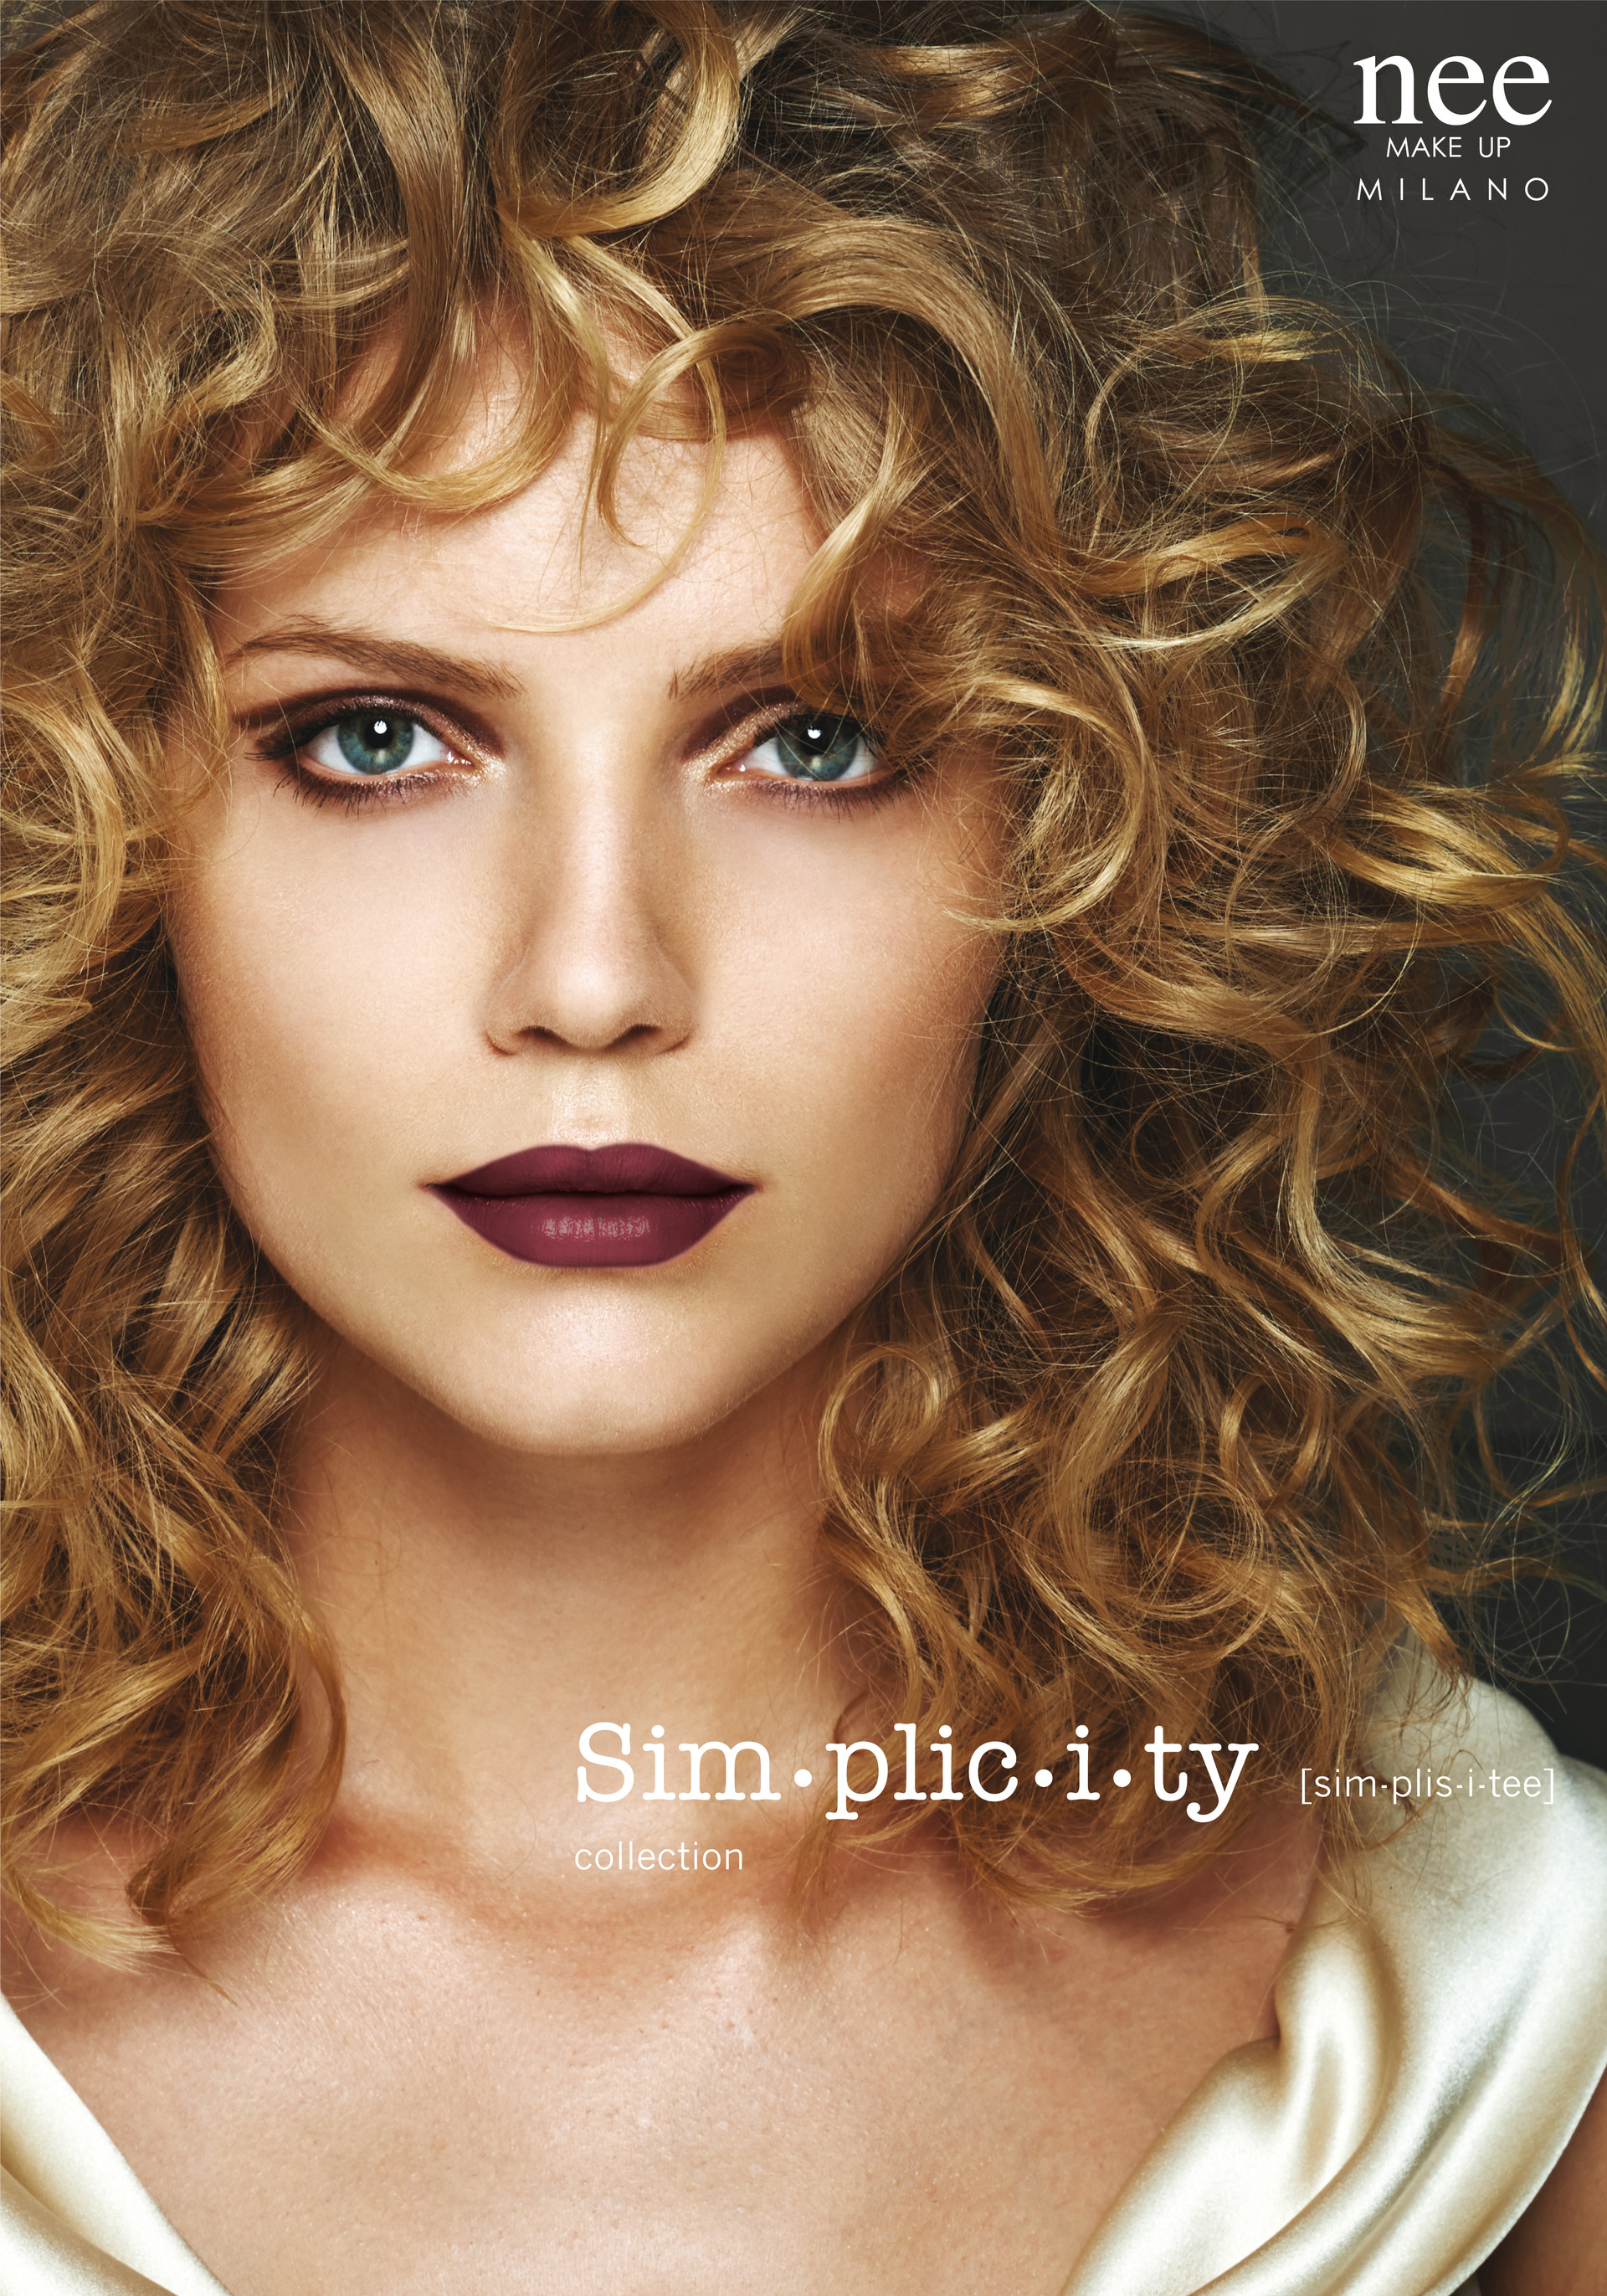 Simplicity campaign Nee make up Milano AW/16